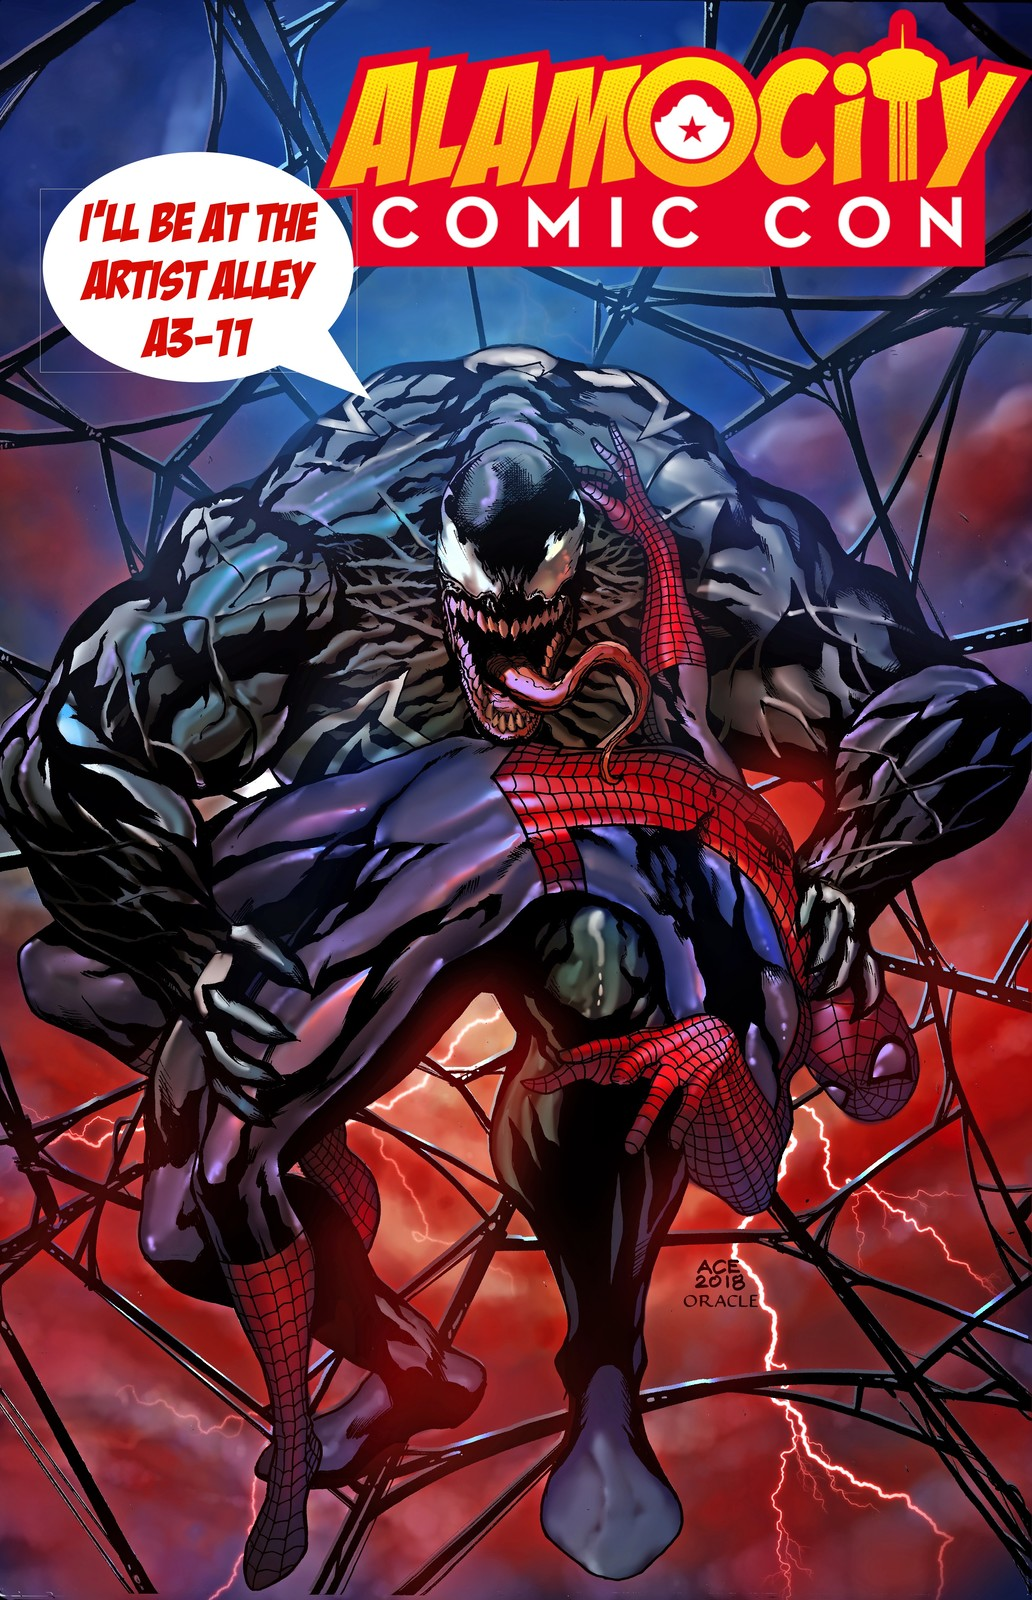 Venom does Bane. I'll be at the Alamo City Comic Con this October 26-28. Come by the artist alley A3-11